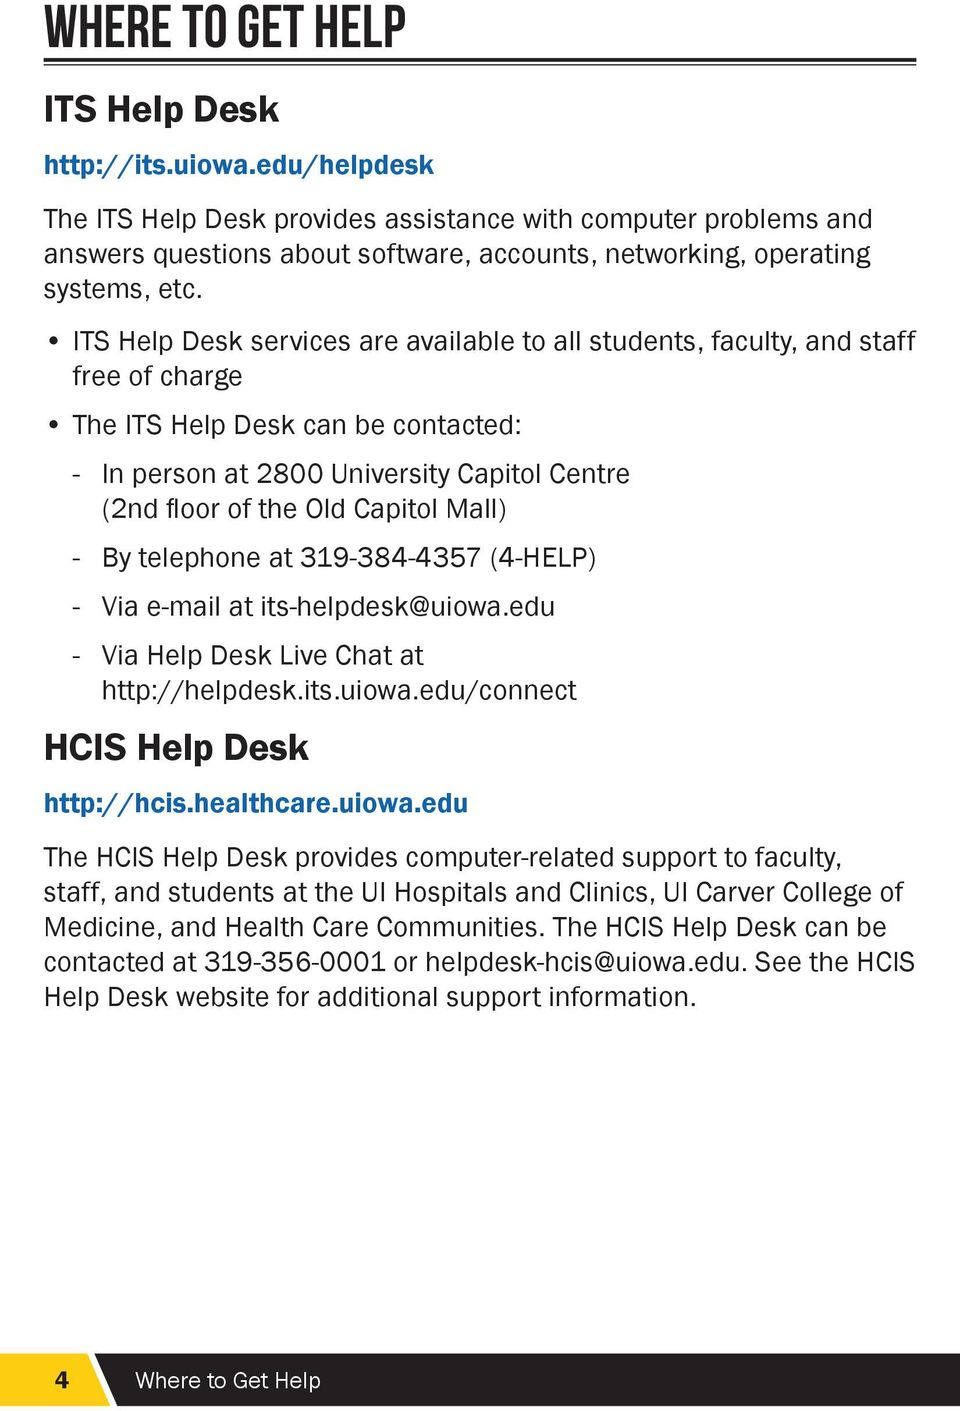 ITS Help Desk services are available to all students, faculty, and staff free of charge The ITS Help Desk can be contacted: In person at 2800 University Capitol Centre (2nd floor of the Old Capitol